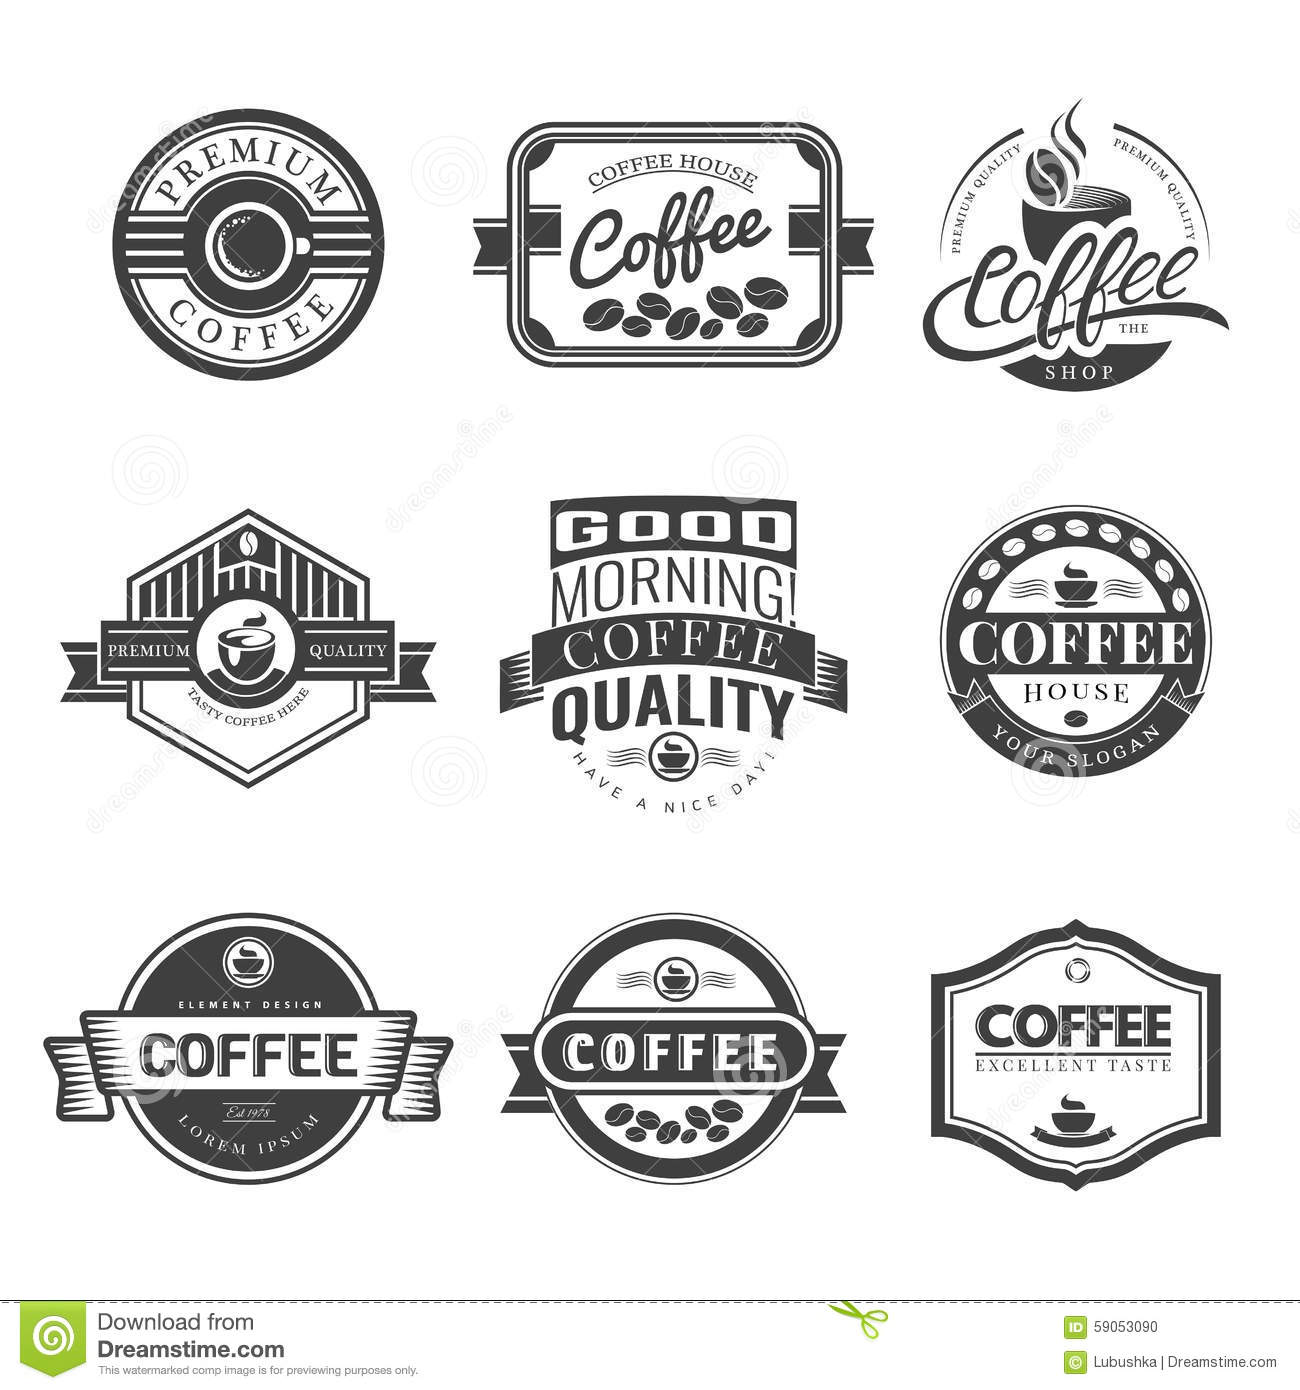 Ristretto Stock Illustrations.